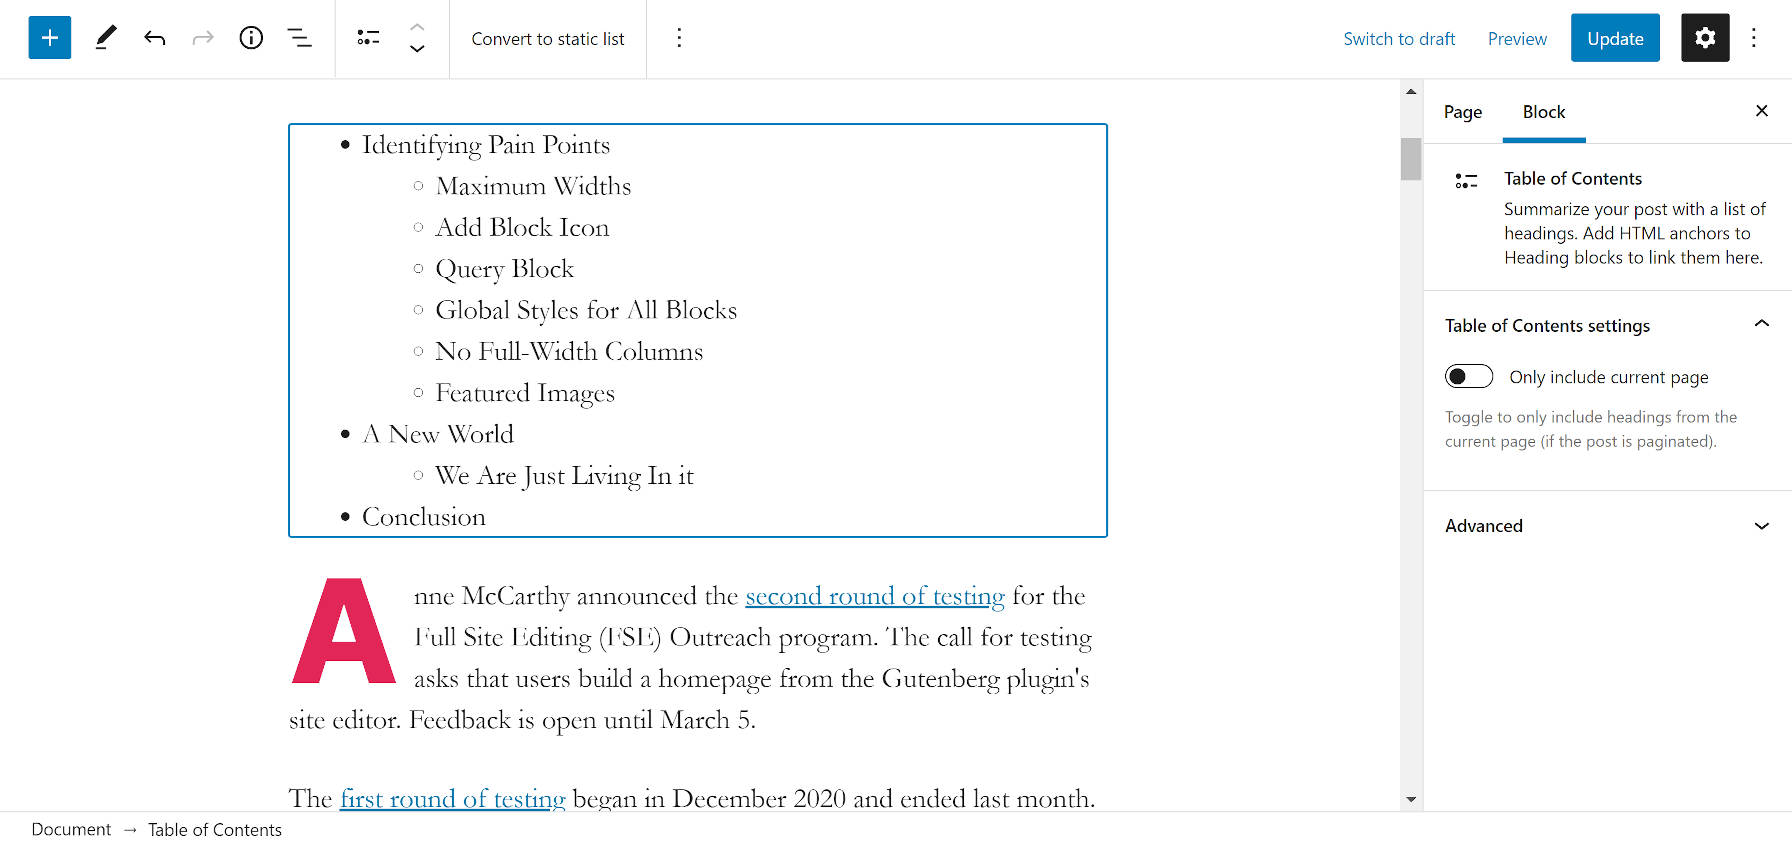 TOC block automatically filling out as new headings are added to the post content in the editor.